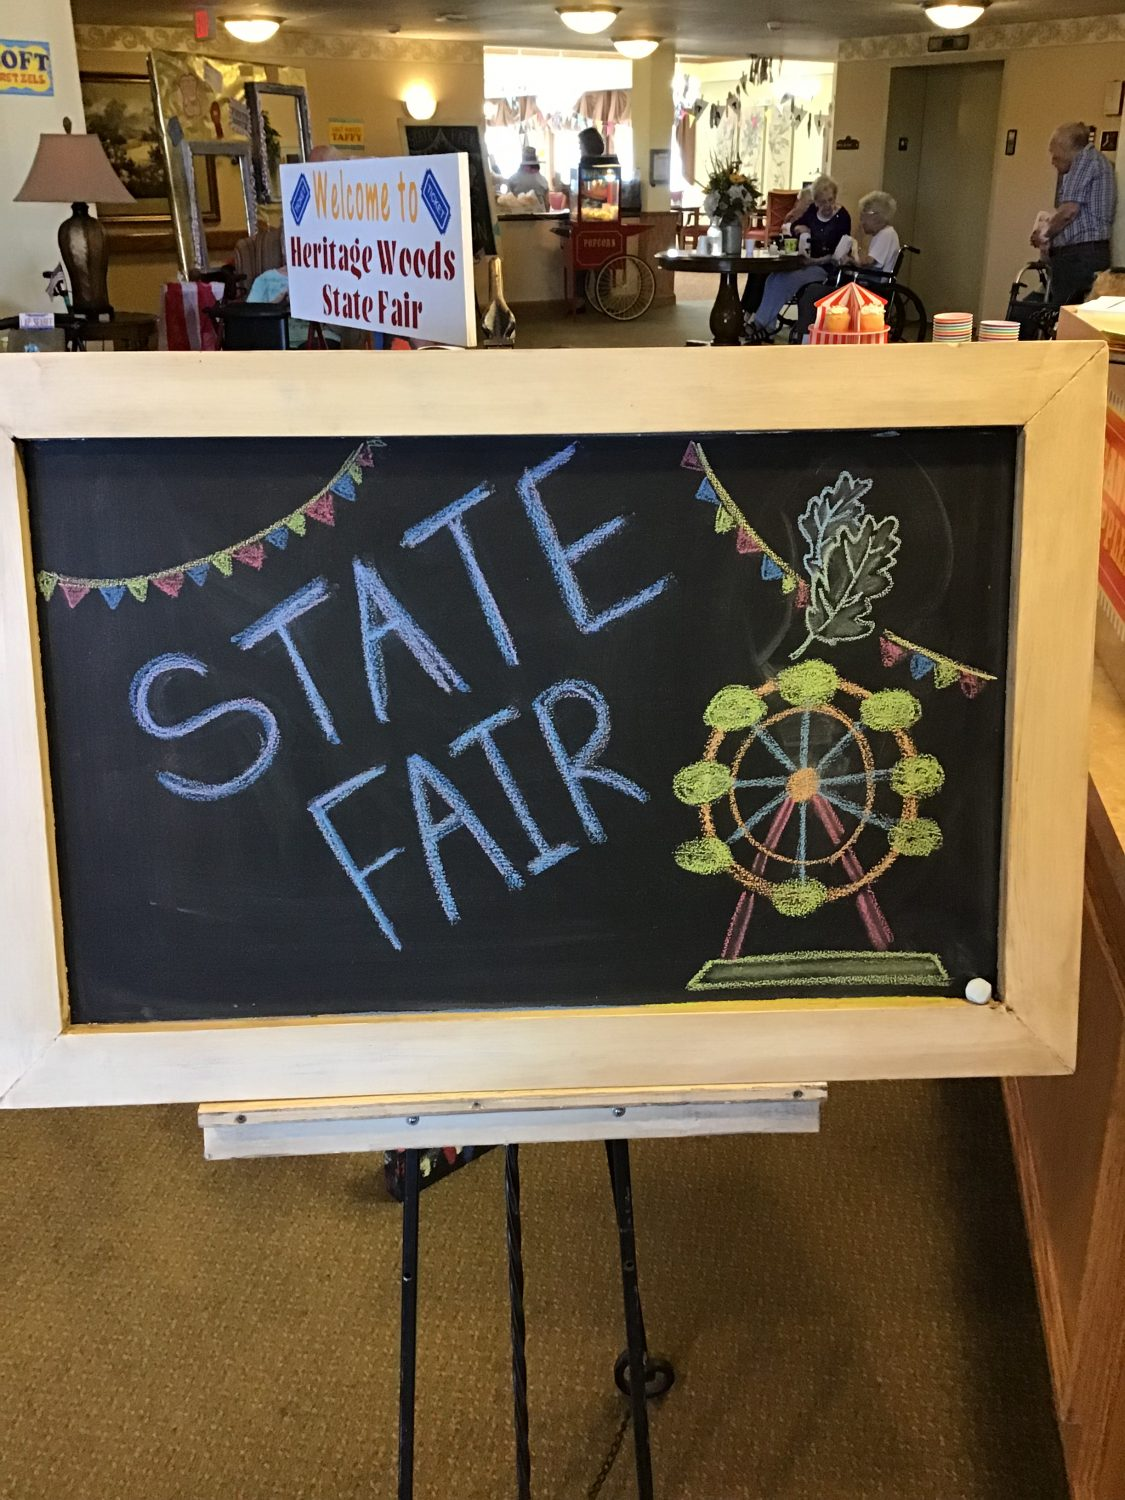 Heritage Woods Hosts Annual State Fair